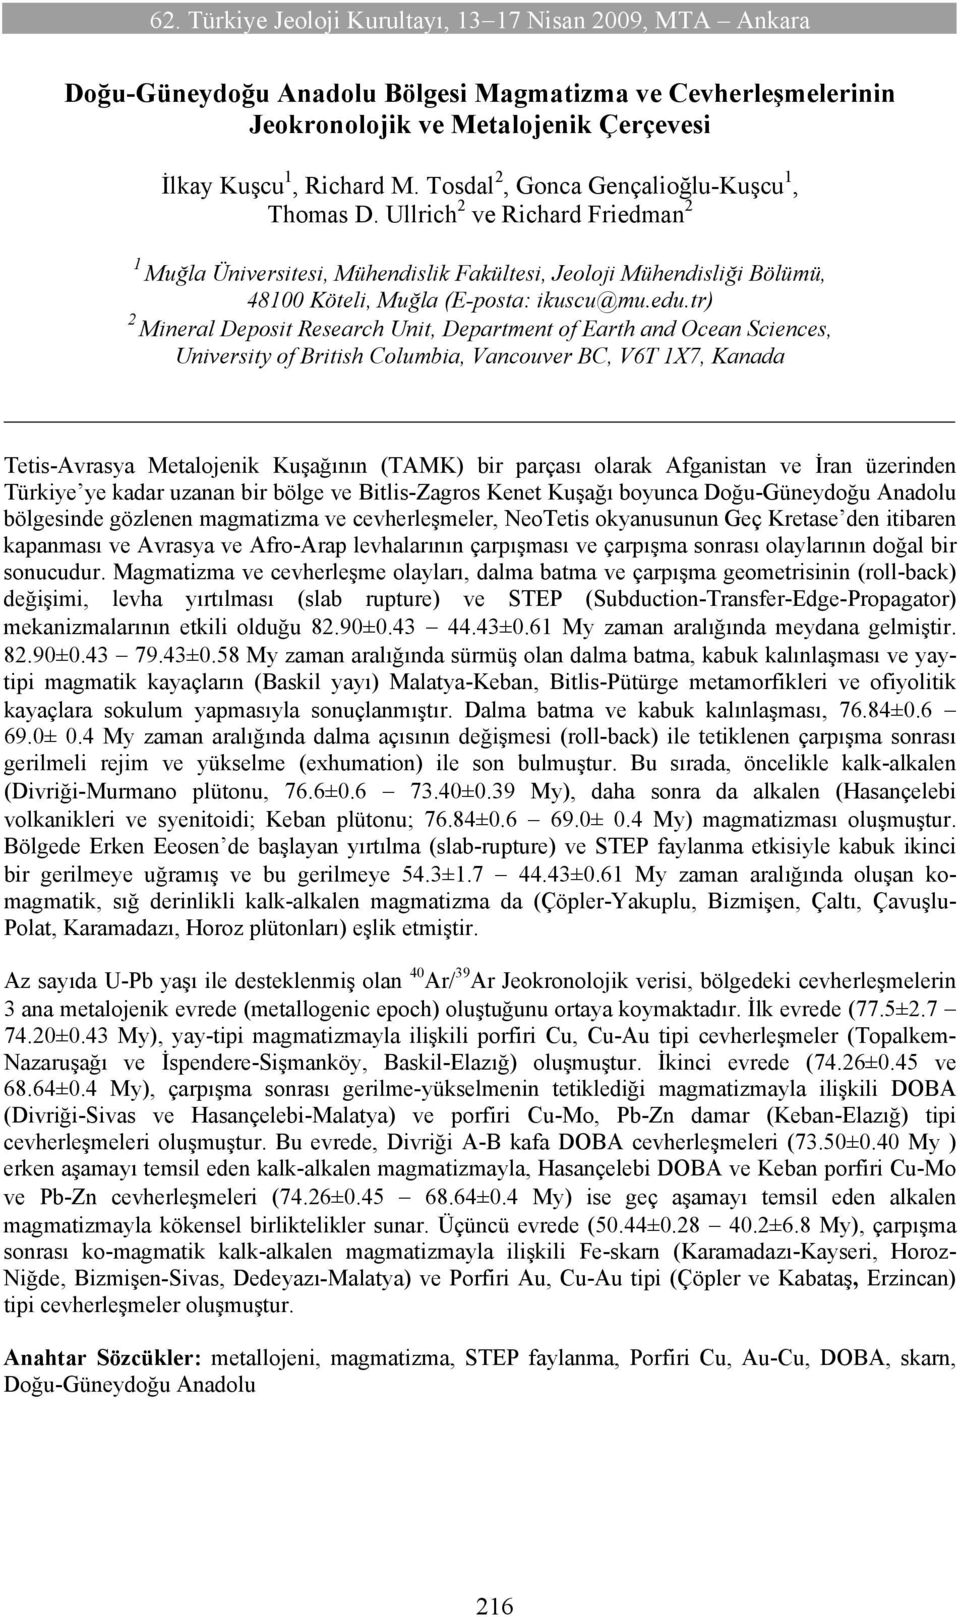 tr) 2 Mineral Deposit Research Unit, Department of Earth and Ocean Sciences, University of British Columbia, Vancouver BC, V6T 1X7, Kanada Tetis-Avrasya Metalojenik Kuşağının (TAMK) bir parçası